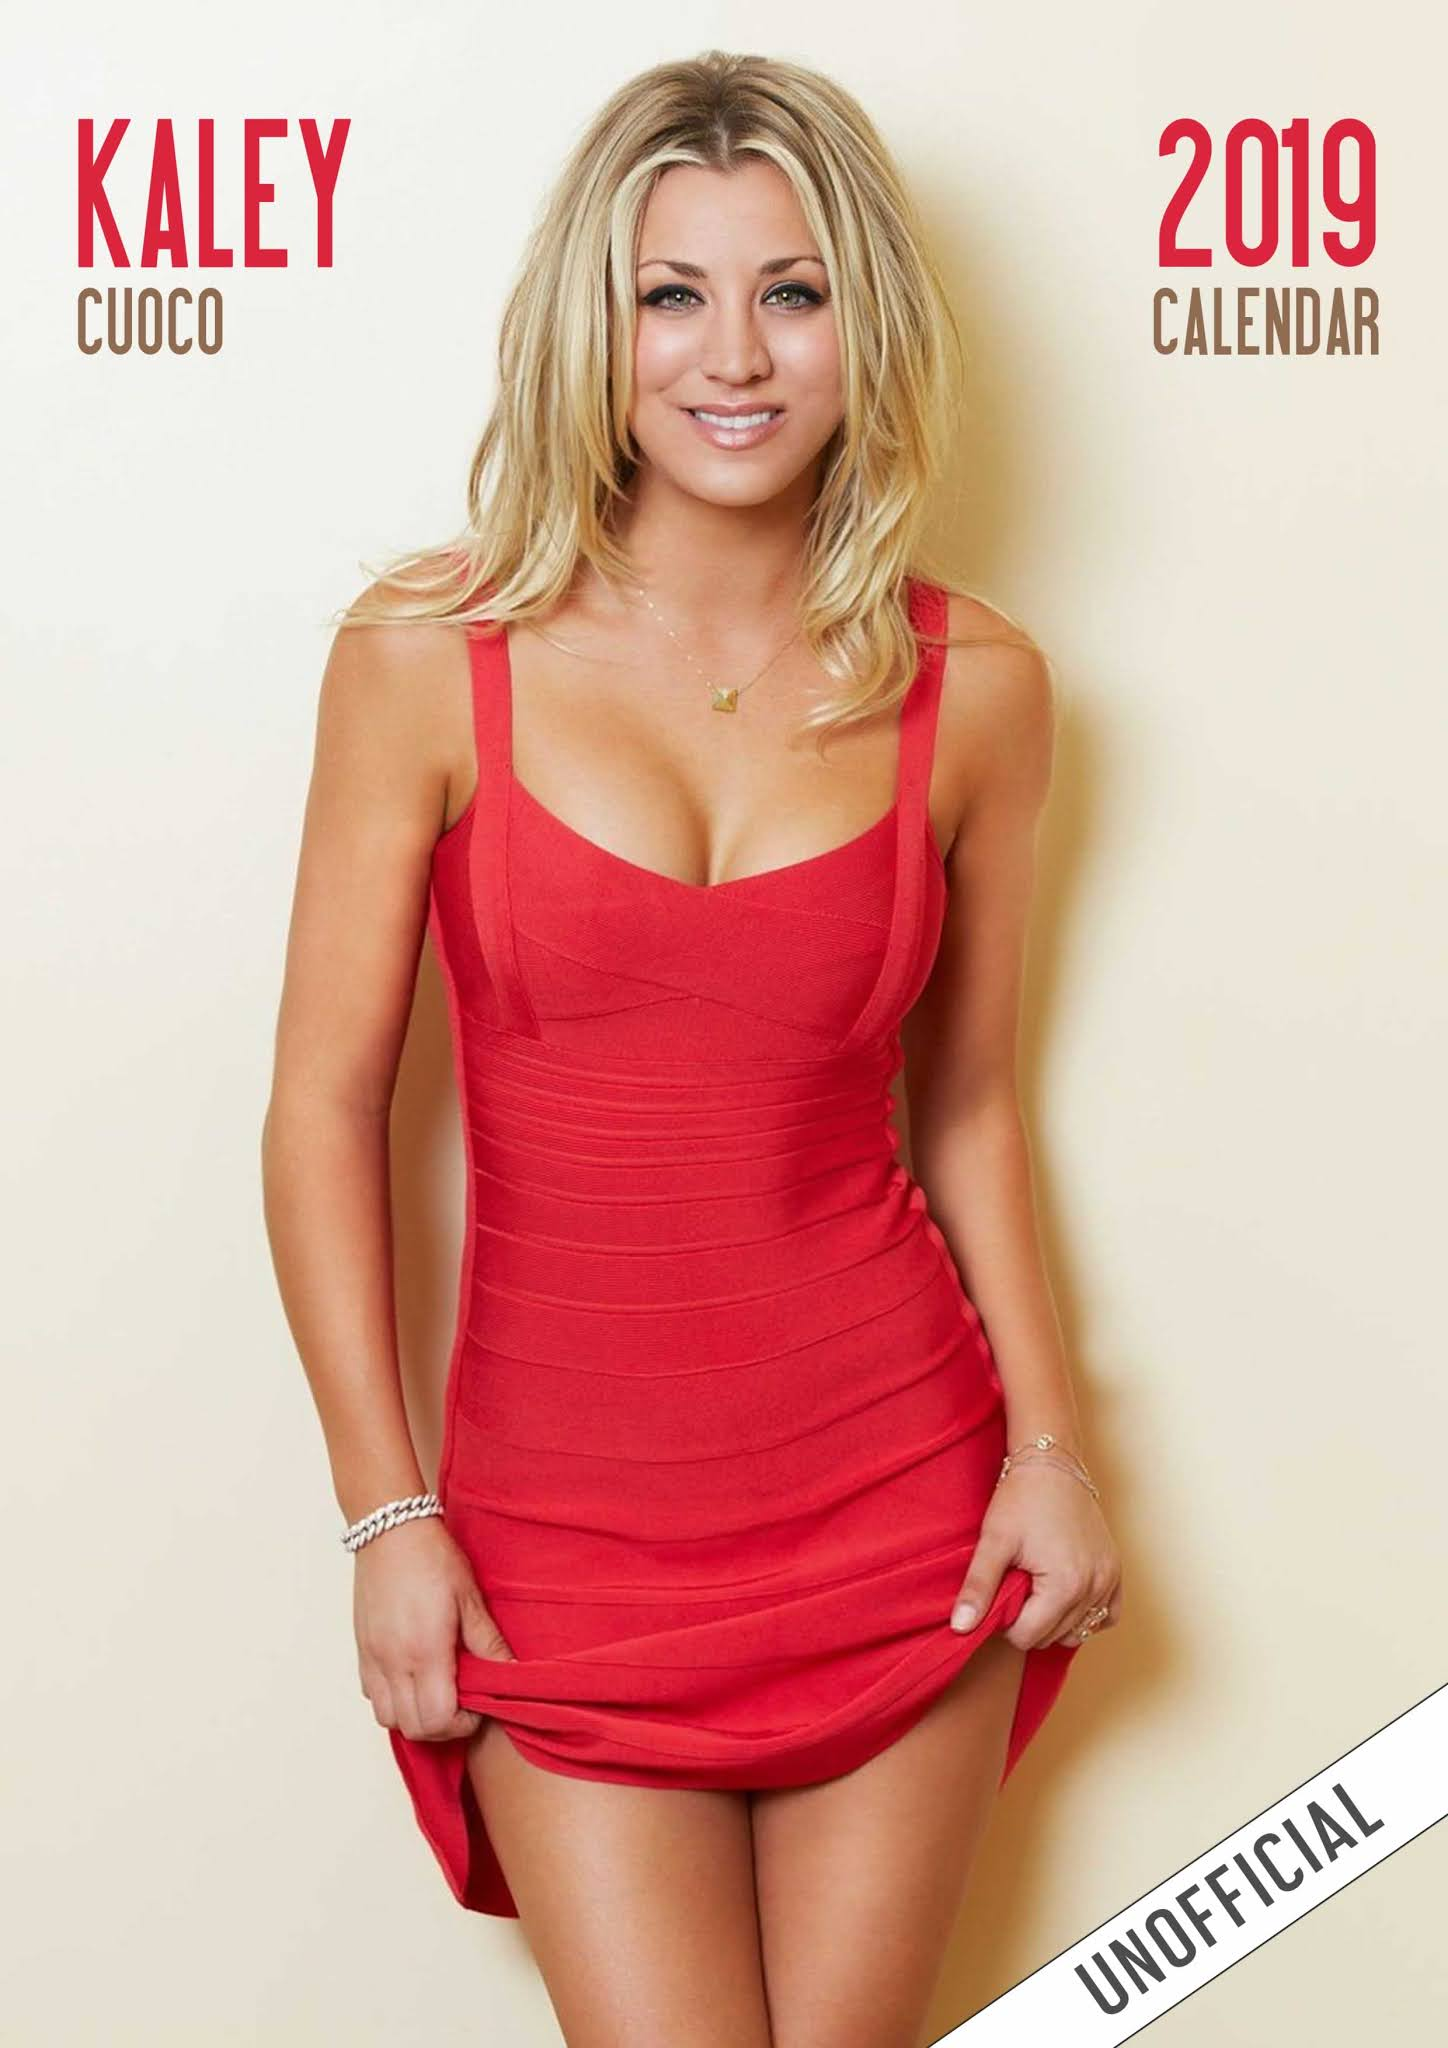 DC COMICS AND ARROWVERSE : Kaley Cuoco Calendar Photoshoot 2021